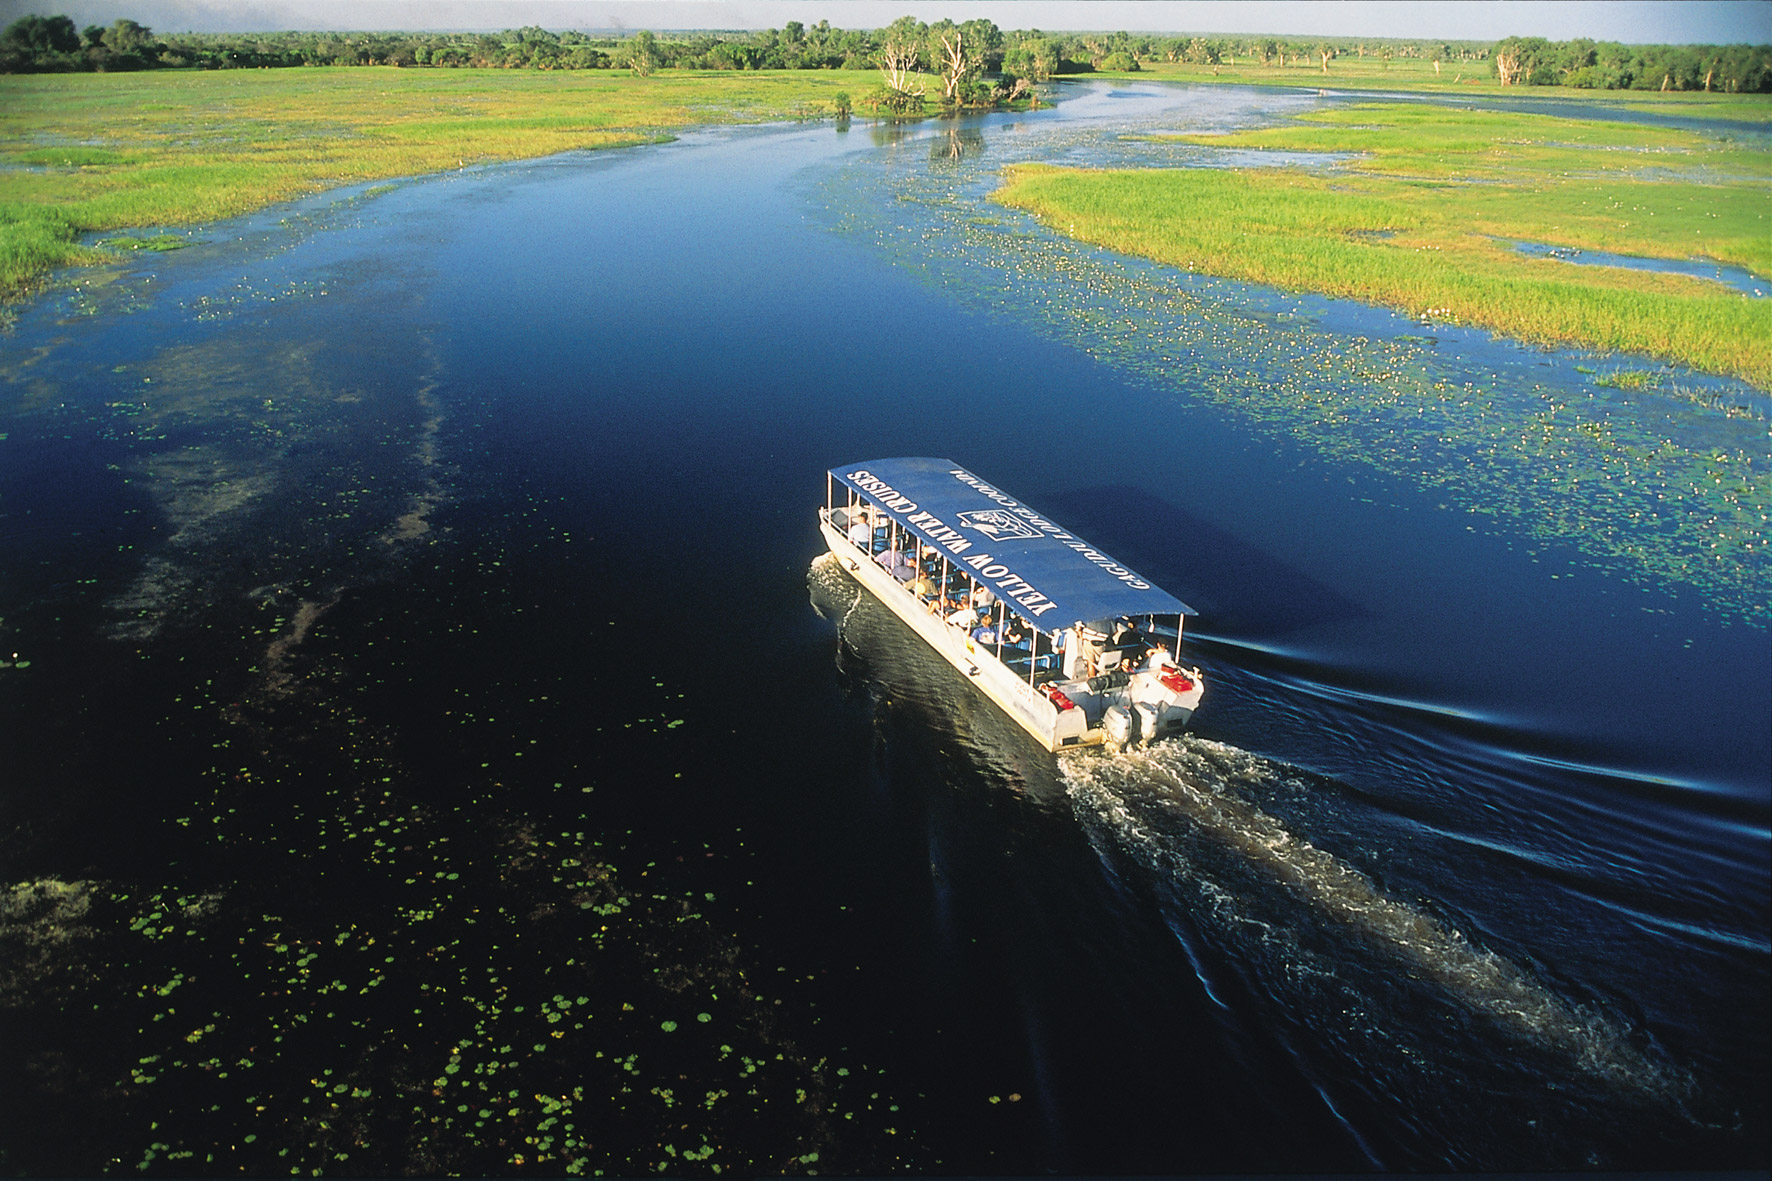 Kakadu & East Alligator River | Yellow Water Cruise, Kakadu National Park, Top End, Northern Territory